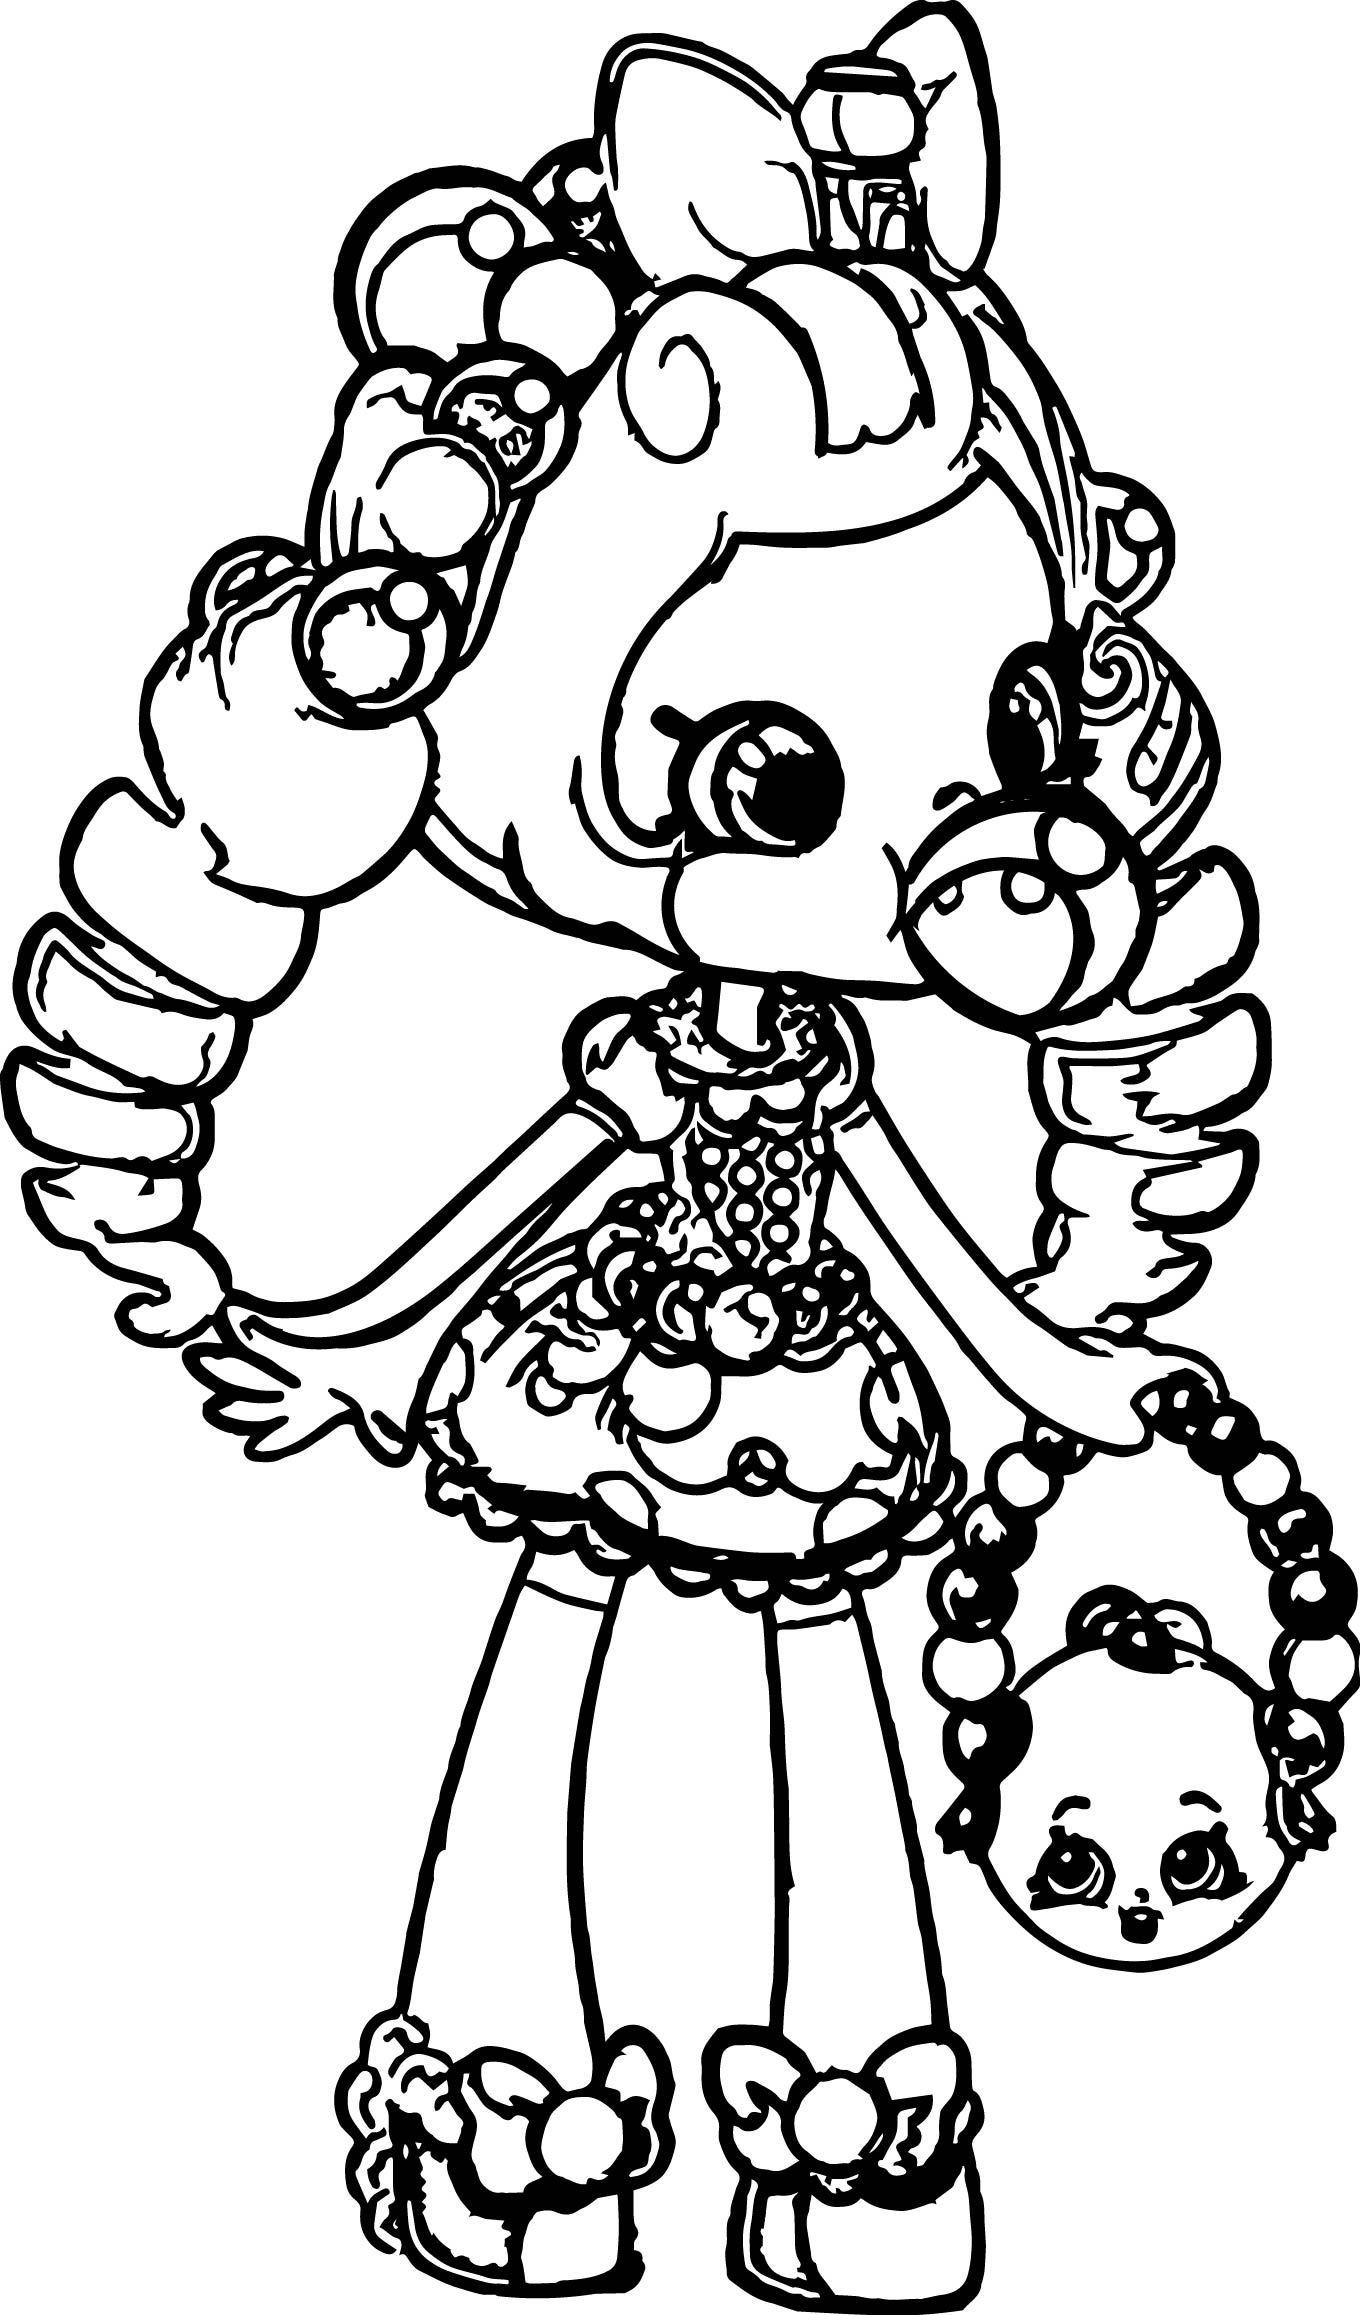 Shopkins color sheets - Pages To Color Of Shopkins Shopkins Christmas Coloring Pages Shopkins Balloon Girl Coloring Page